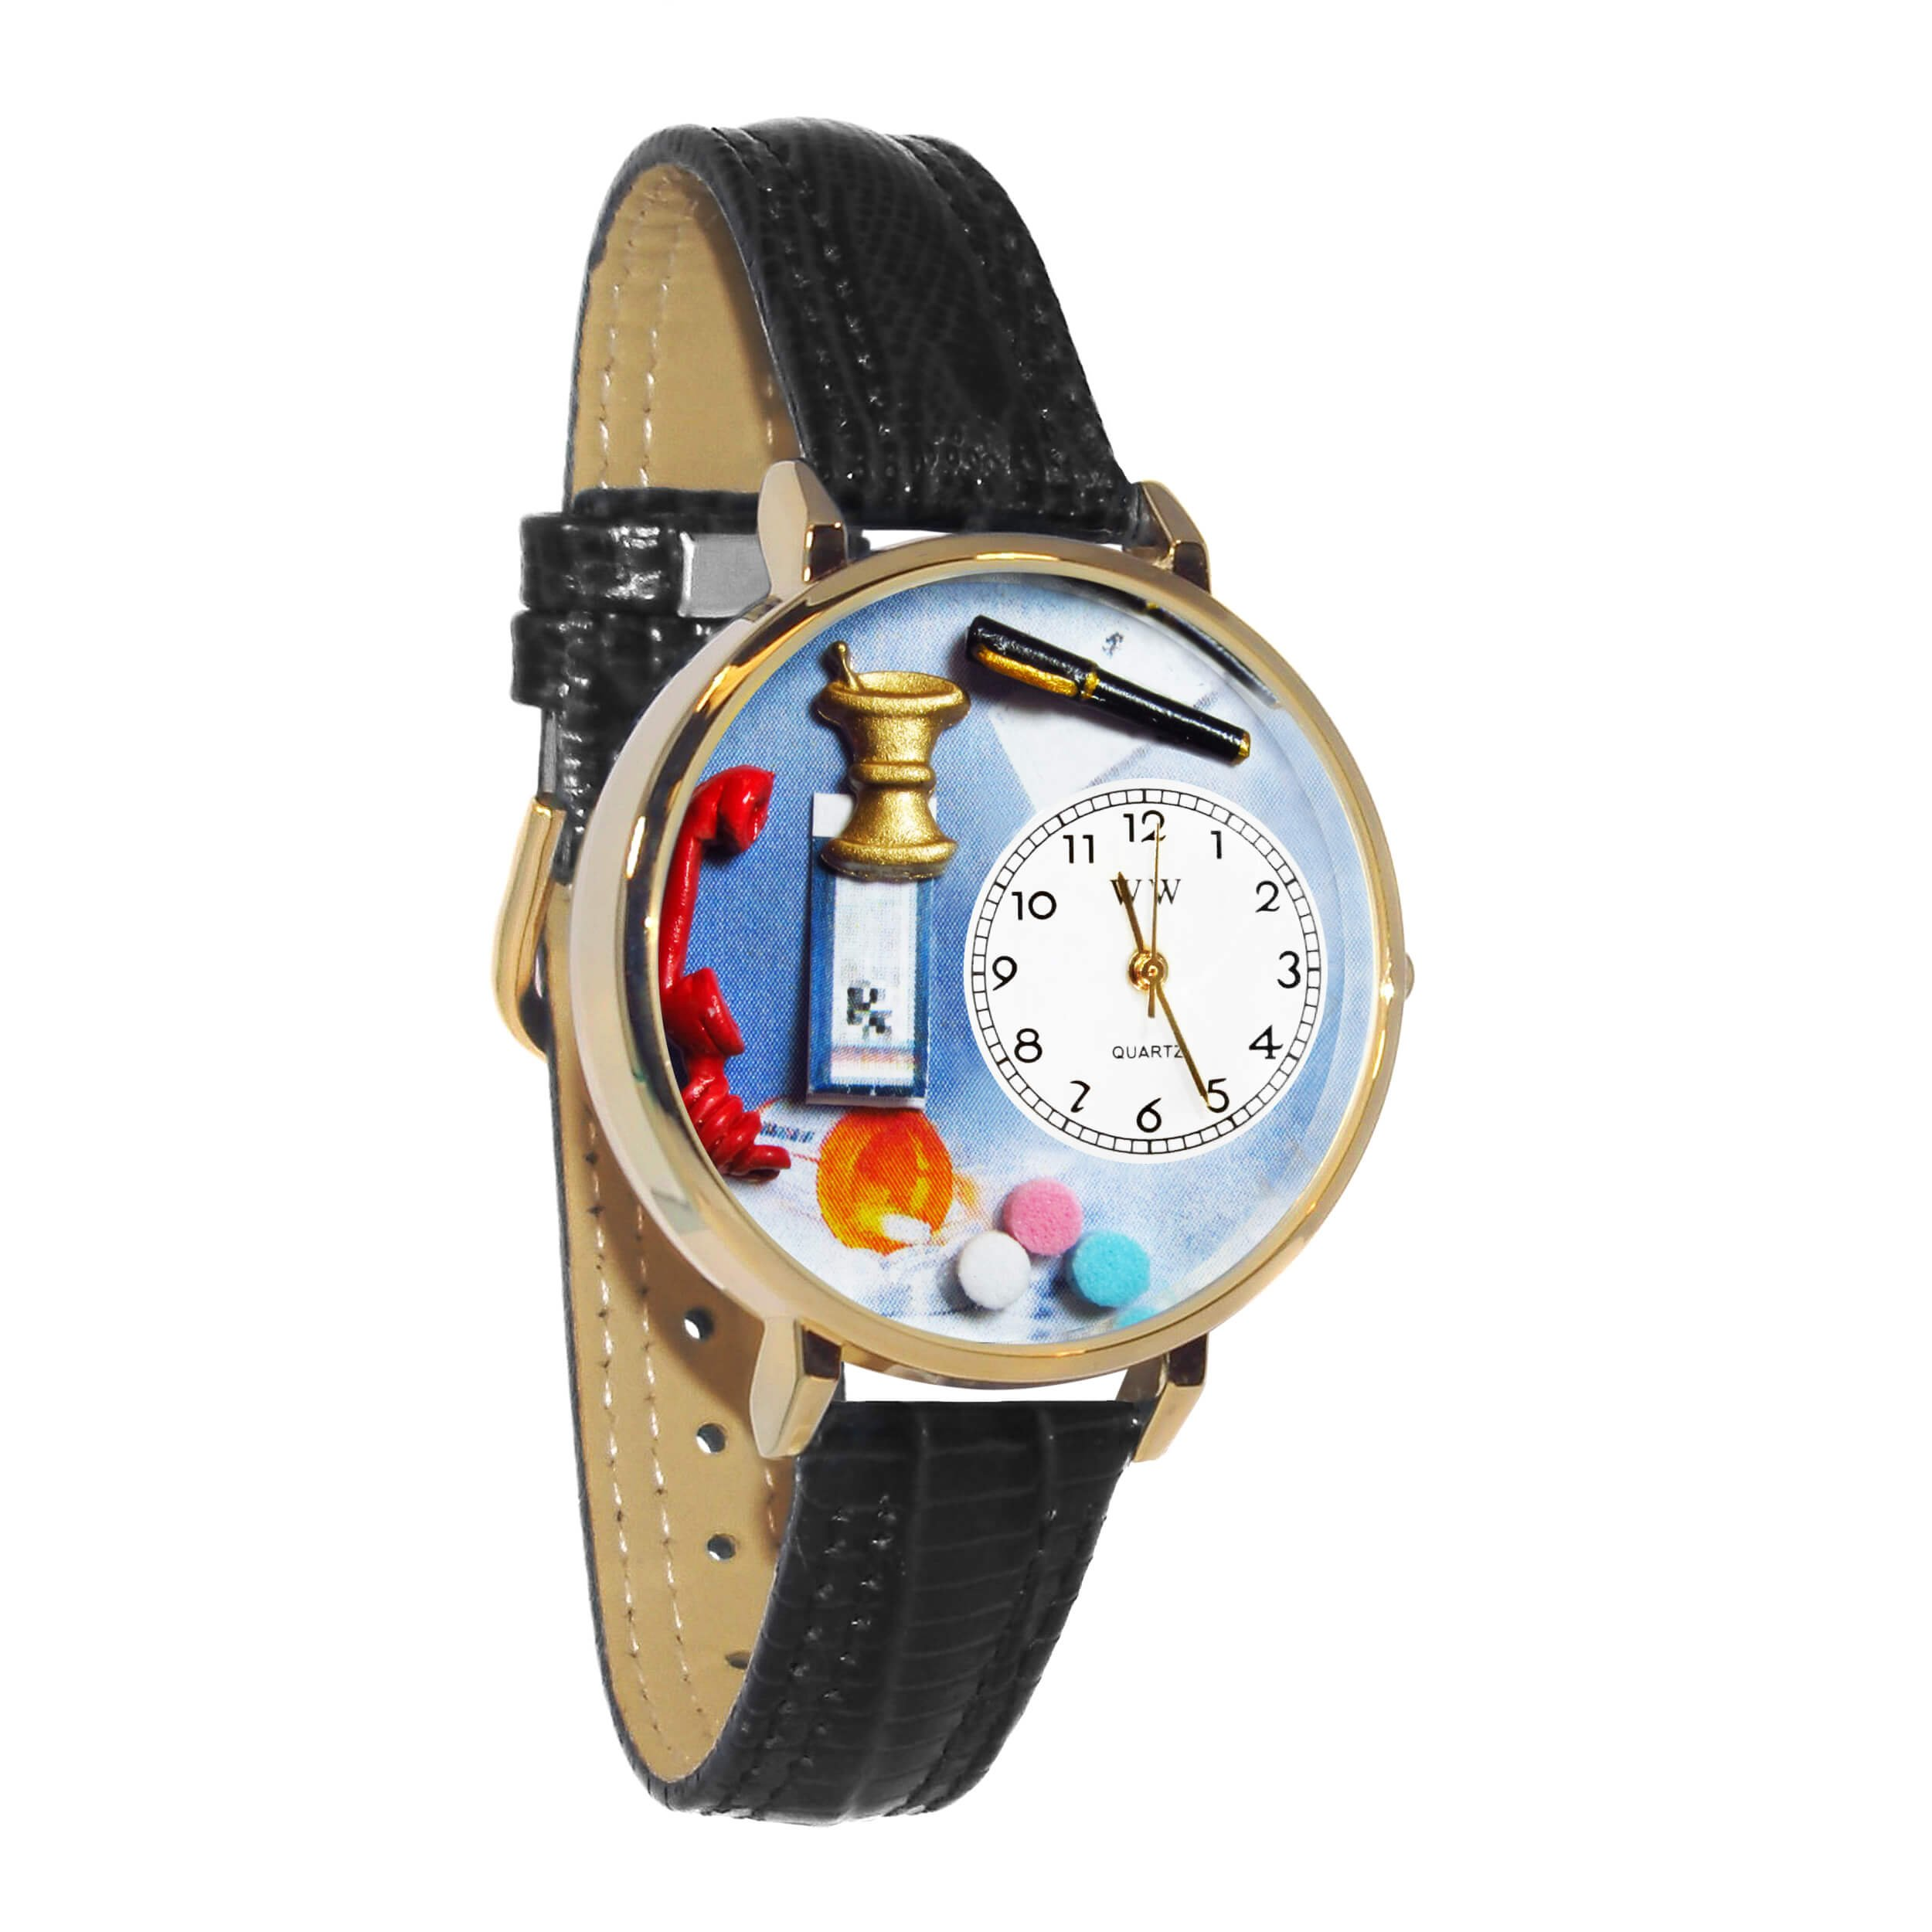 Whimsical Watches Unisex G0620014 Pharmacist Black Padded Leather Watch